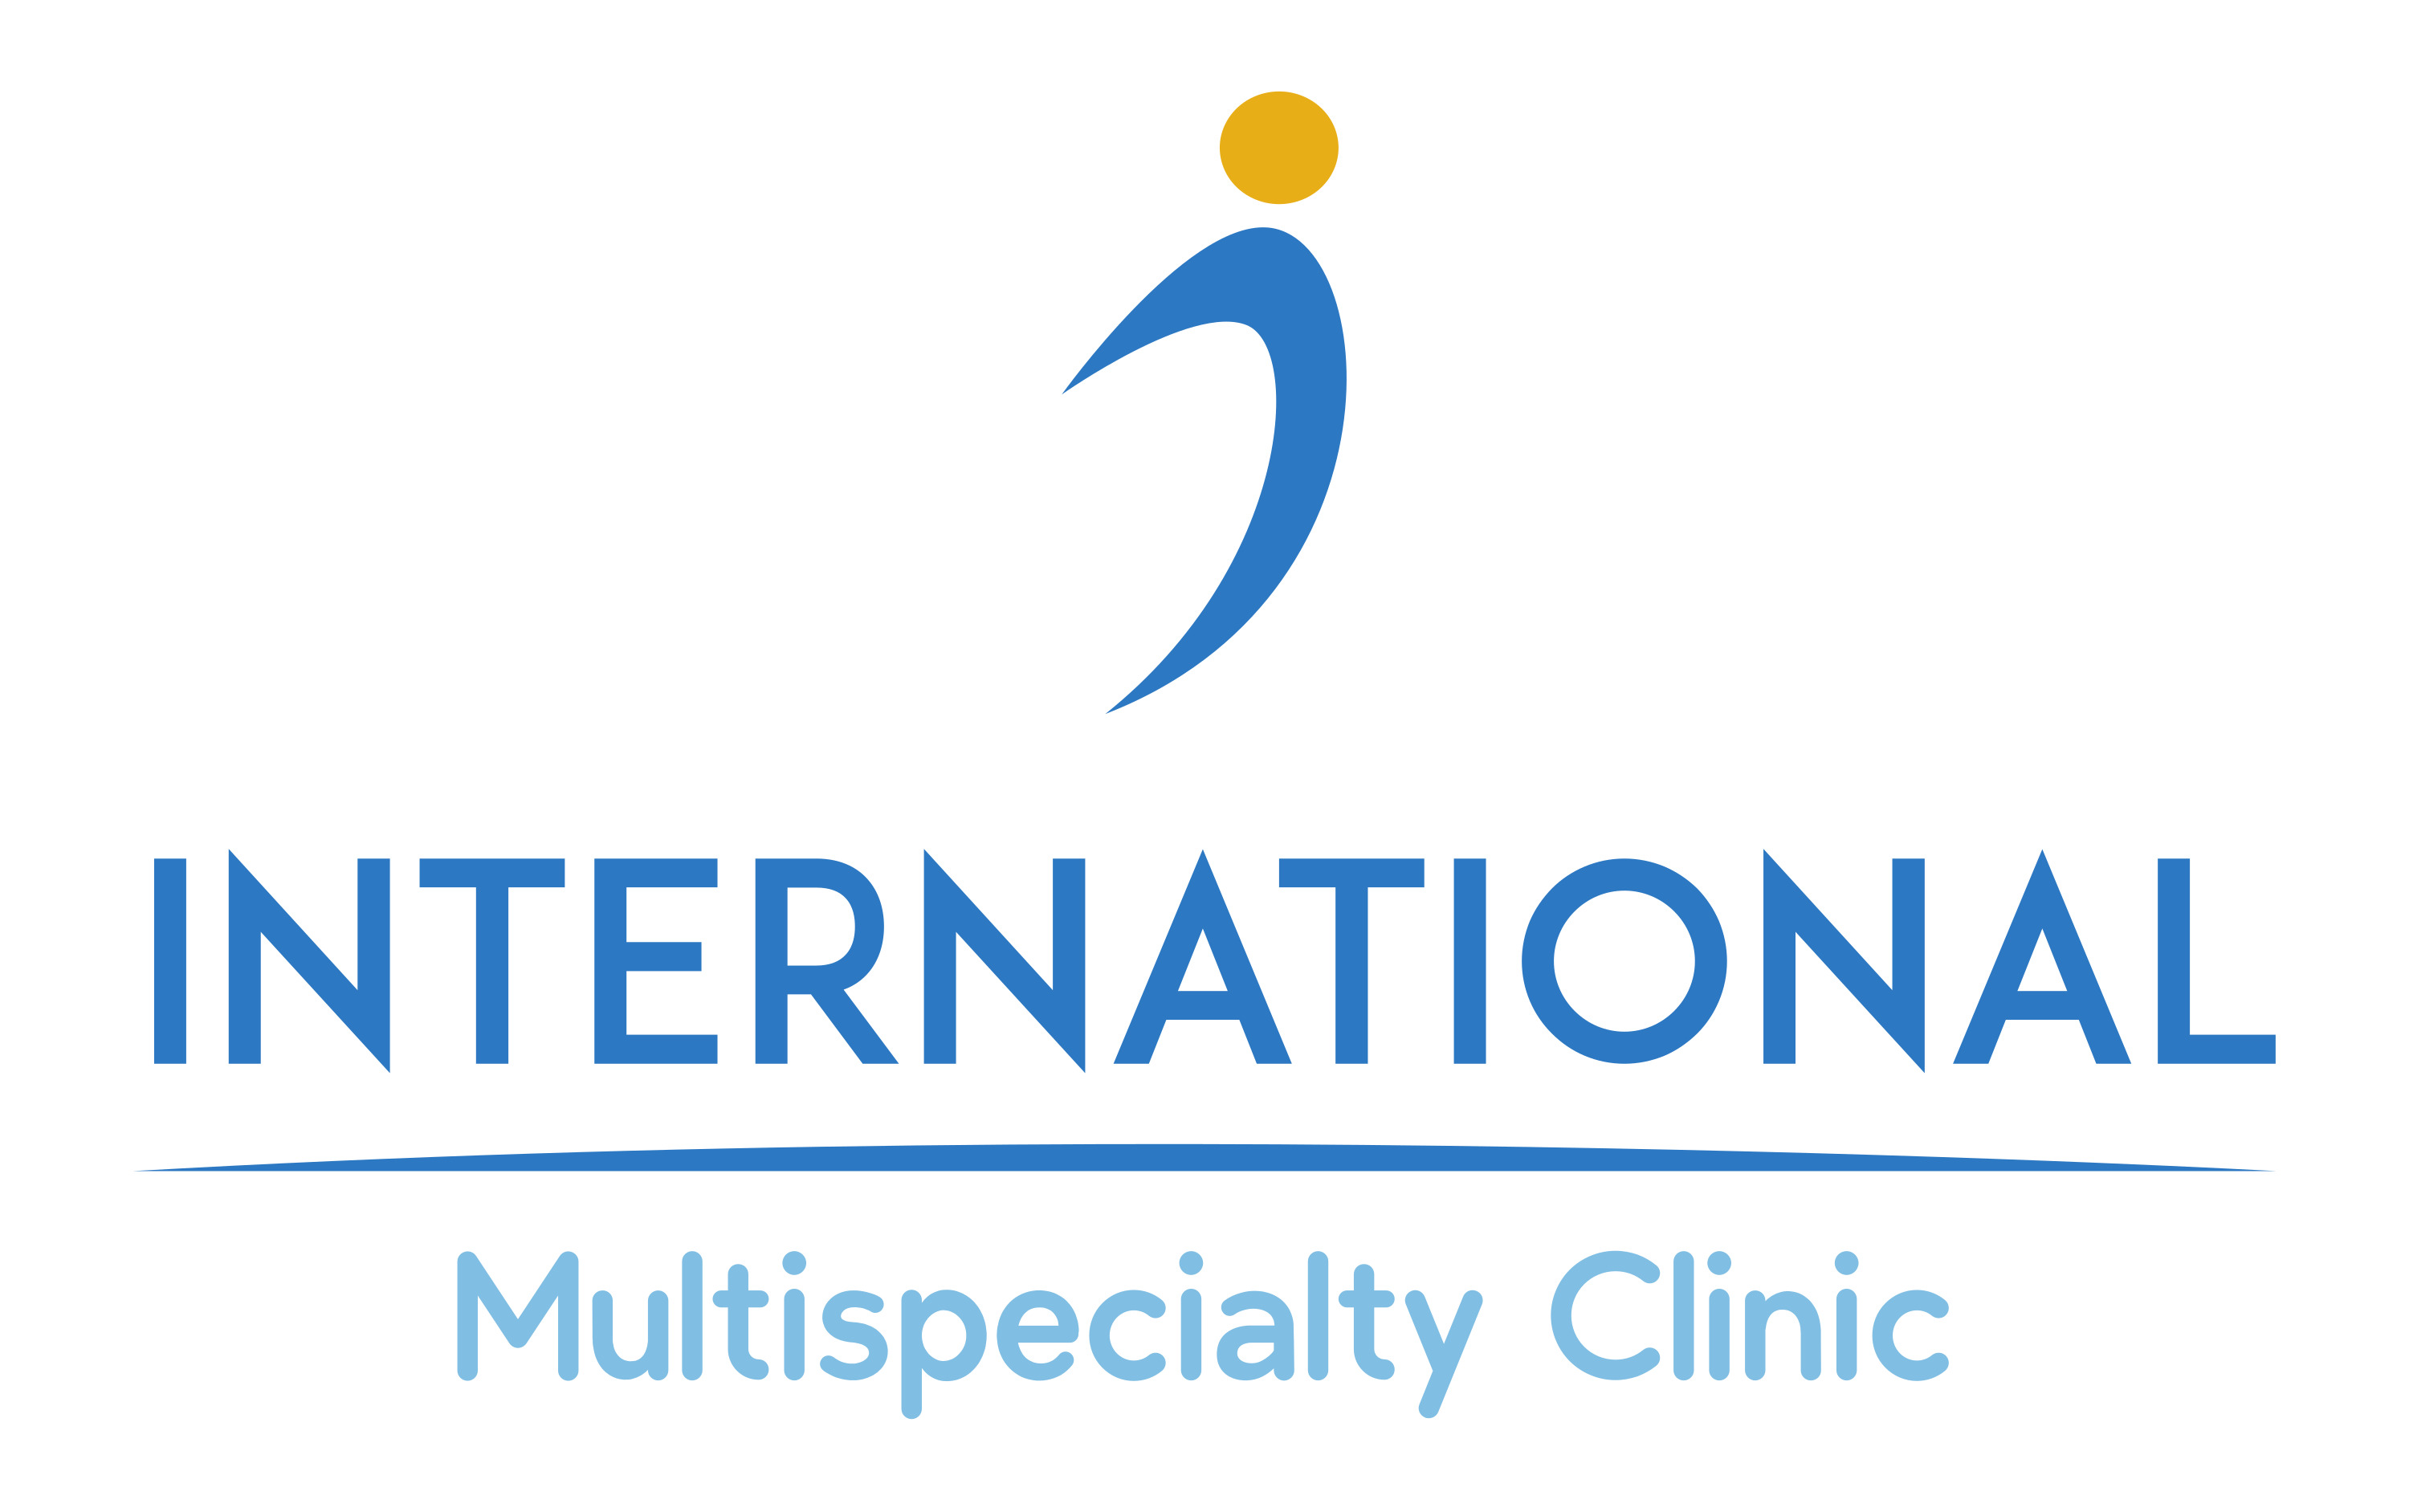 International Multispeciality Clinic